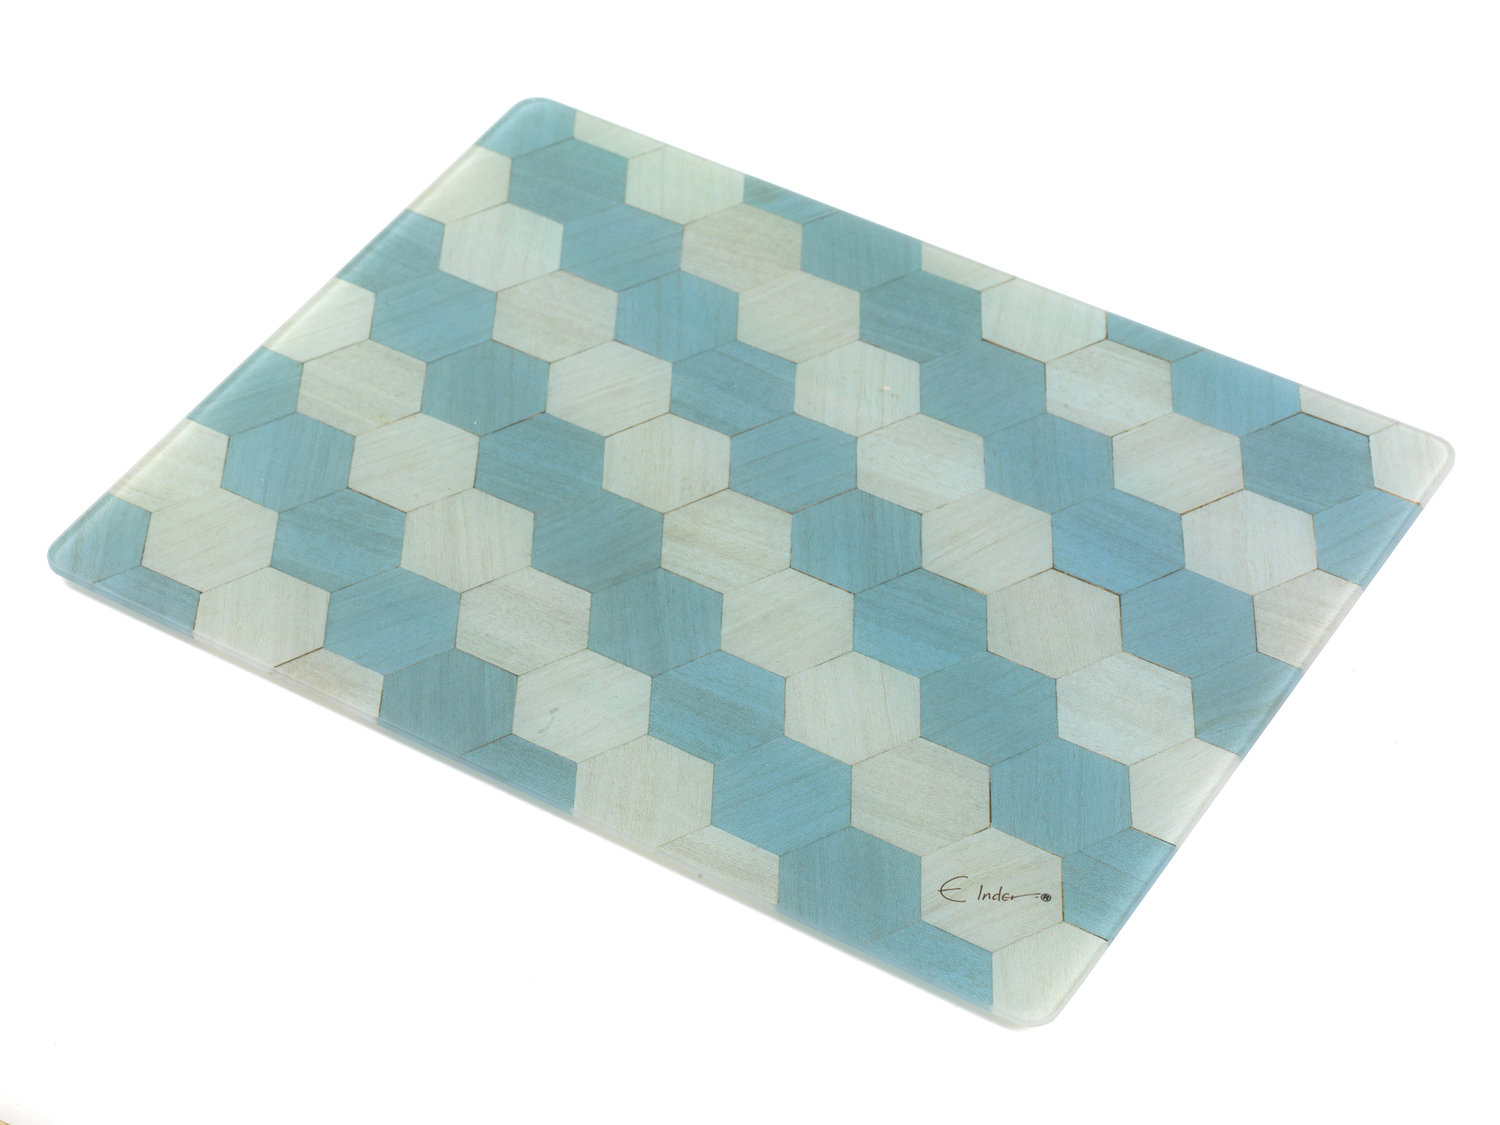 Toughened Glass Chopping Board Worktop Saver - Duck Egg Blue ...